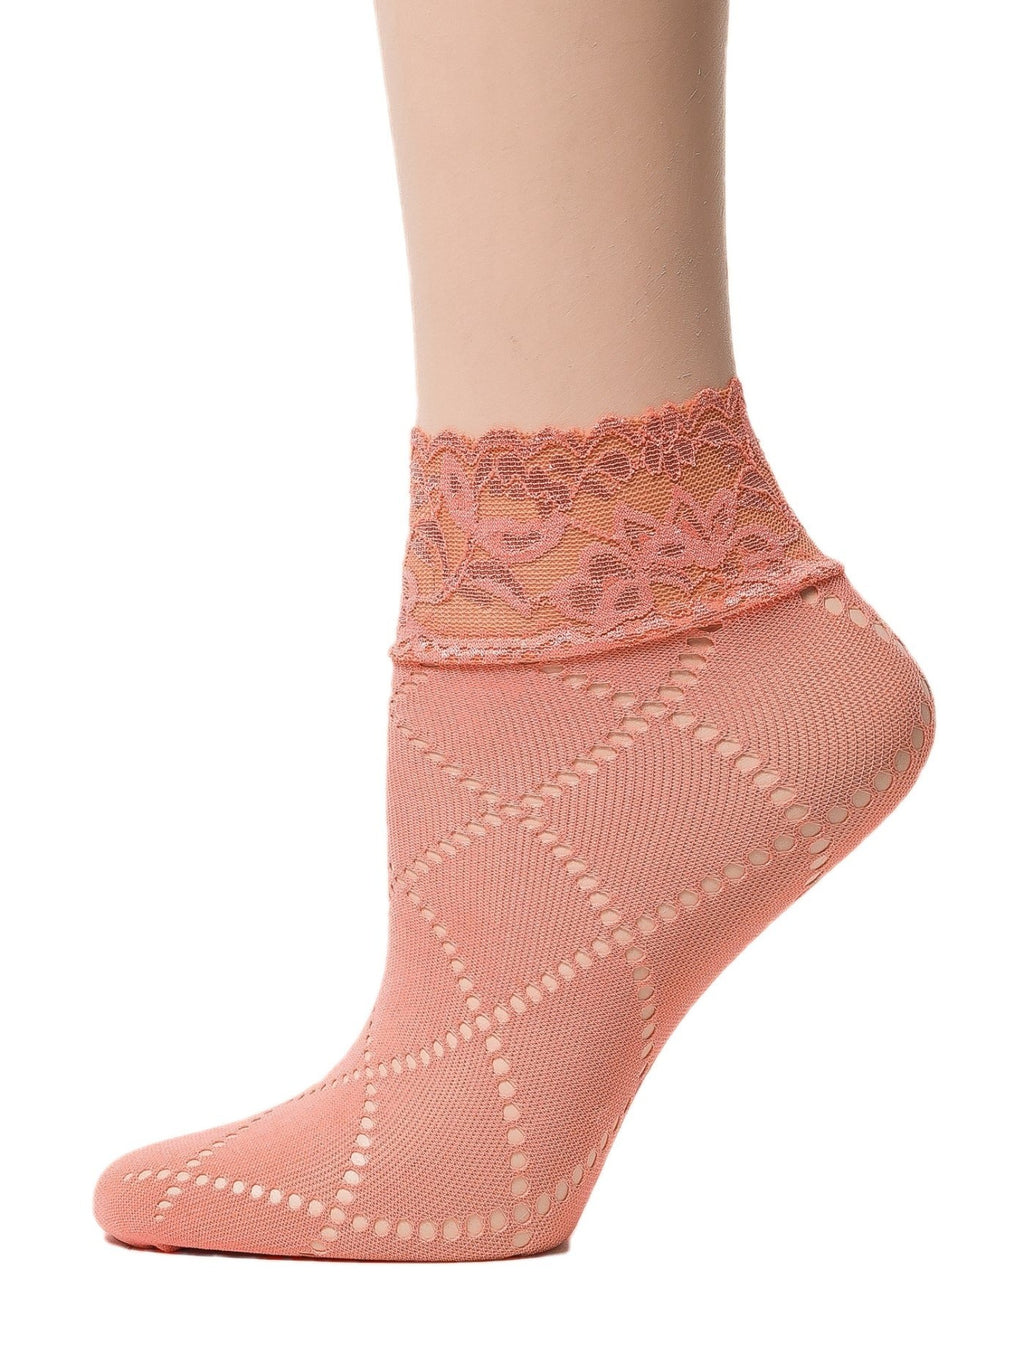 Glowing Orange Mesh Socks - Global Trendz Fashion®